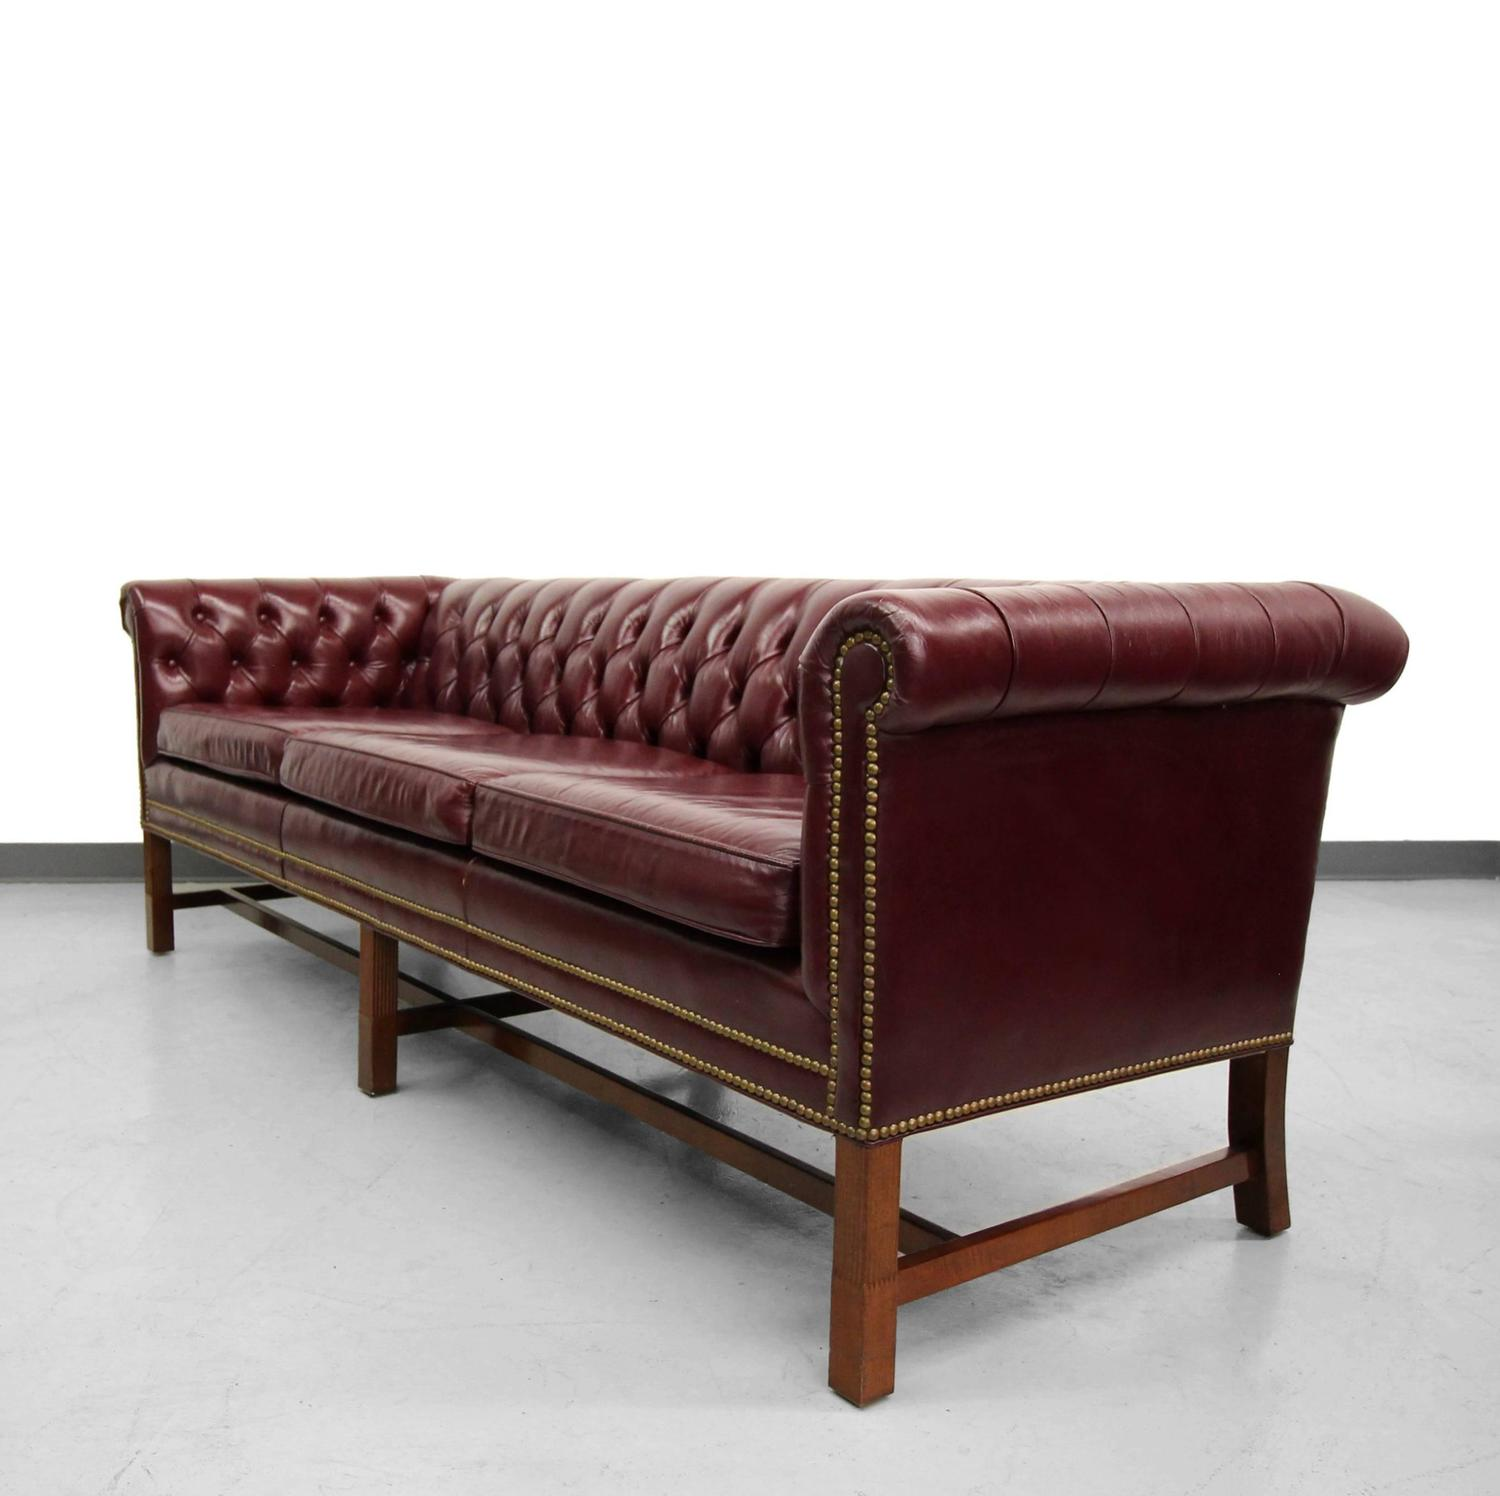 vintage chippendale style leather chesterfield sofa at 1stdibs. Black Bedroom Furniture Sets. Home Design Ideas